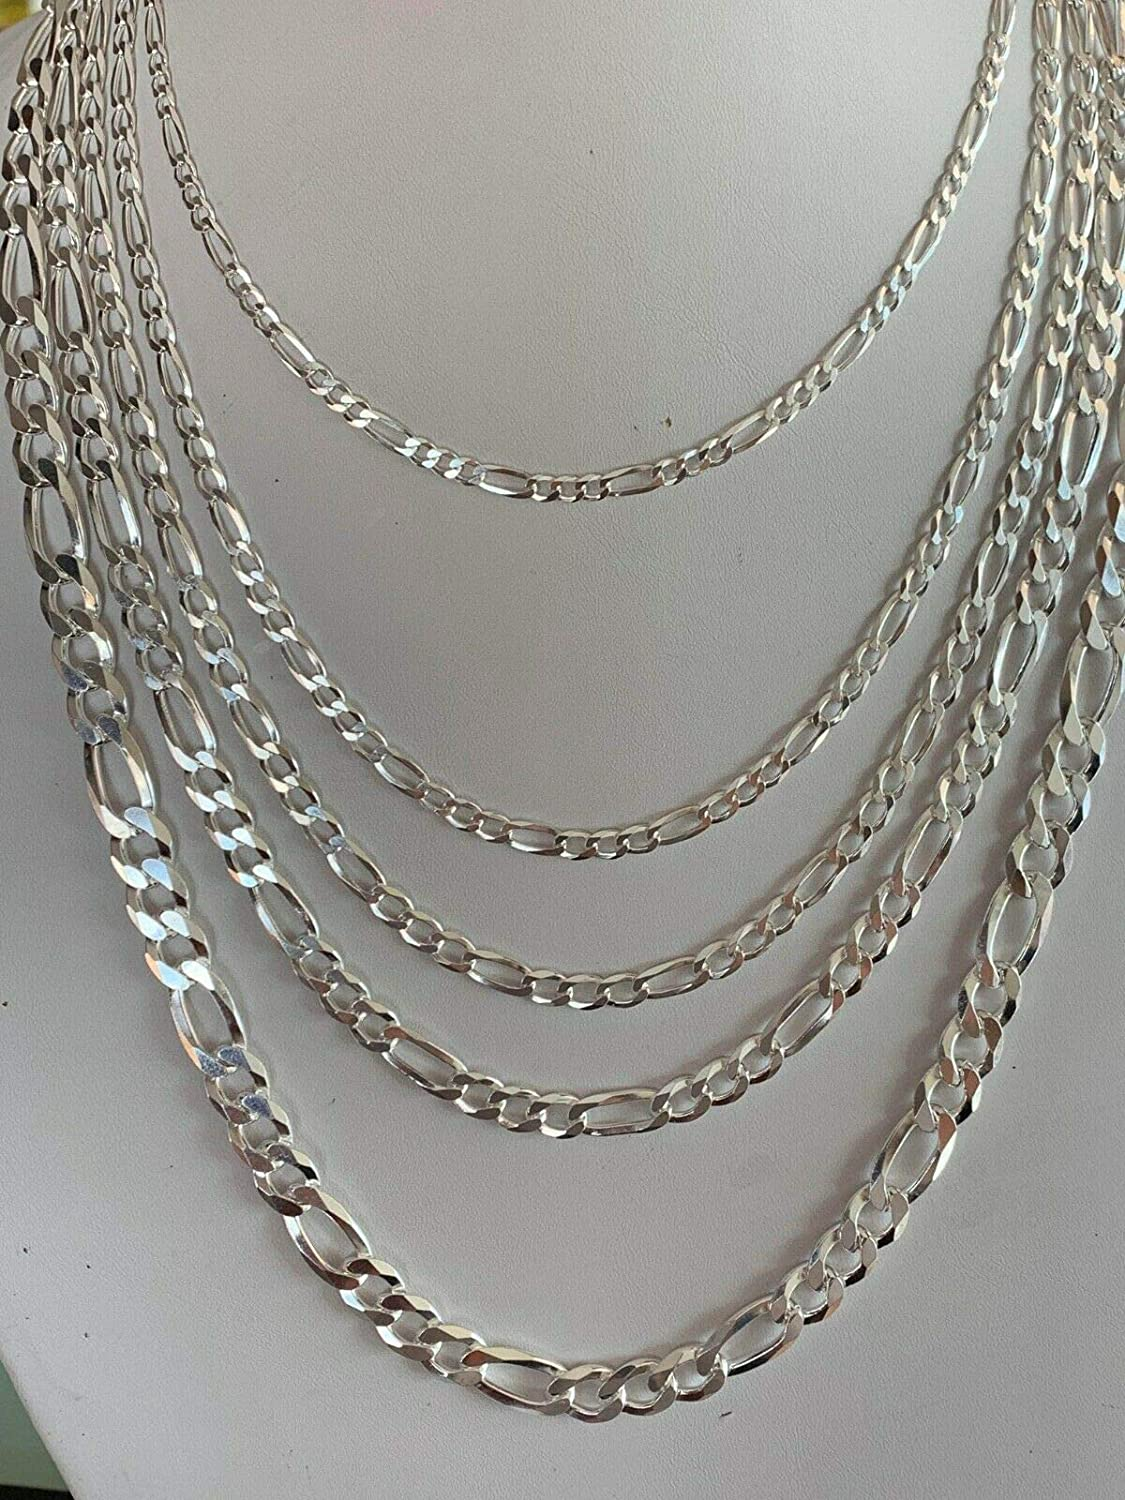 Harlembling Mens Ladies Solid 925 Sterling Silver Figaro Link Chain Great Necklace for Pendants Italy Made 3-10mm 18-30